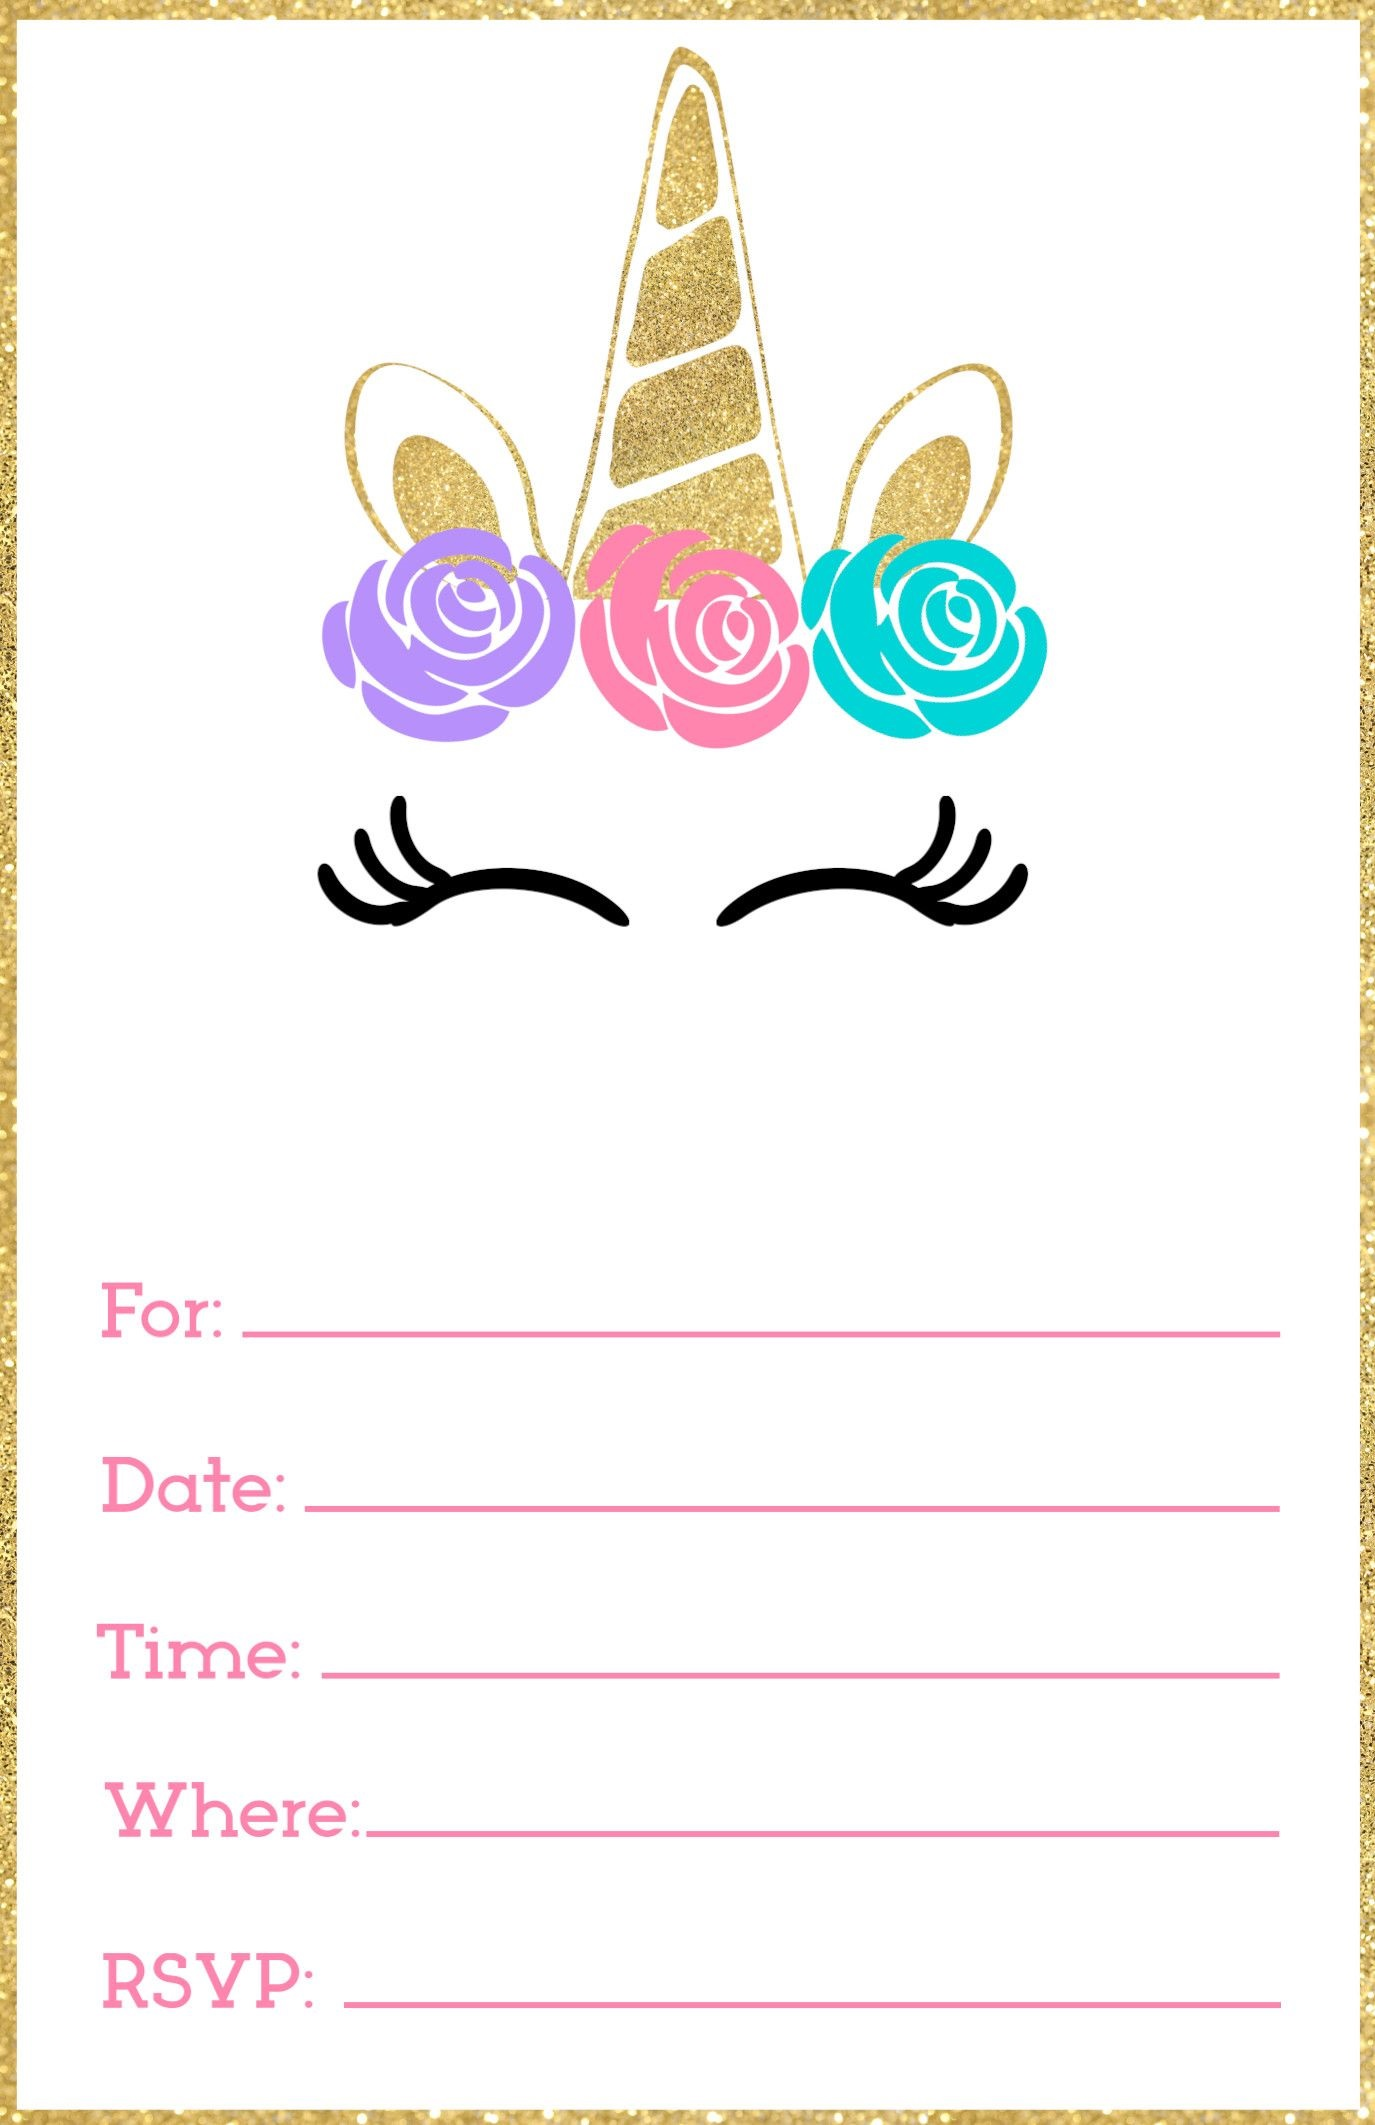 001 Frightening Free Printable Party Invitation Template Photo  Templates Beach Spa TeaFull